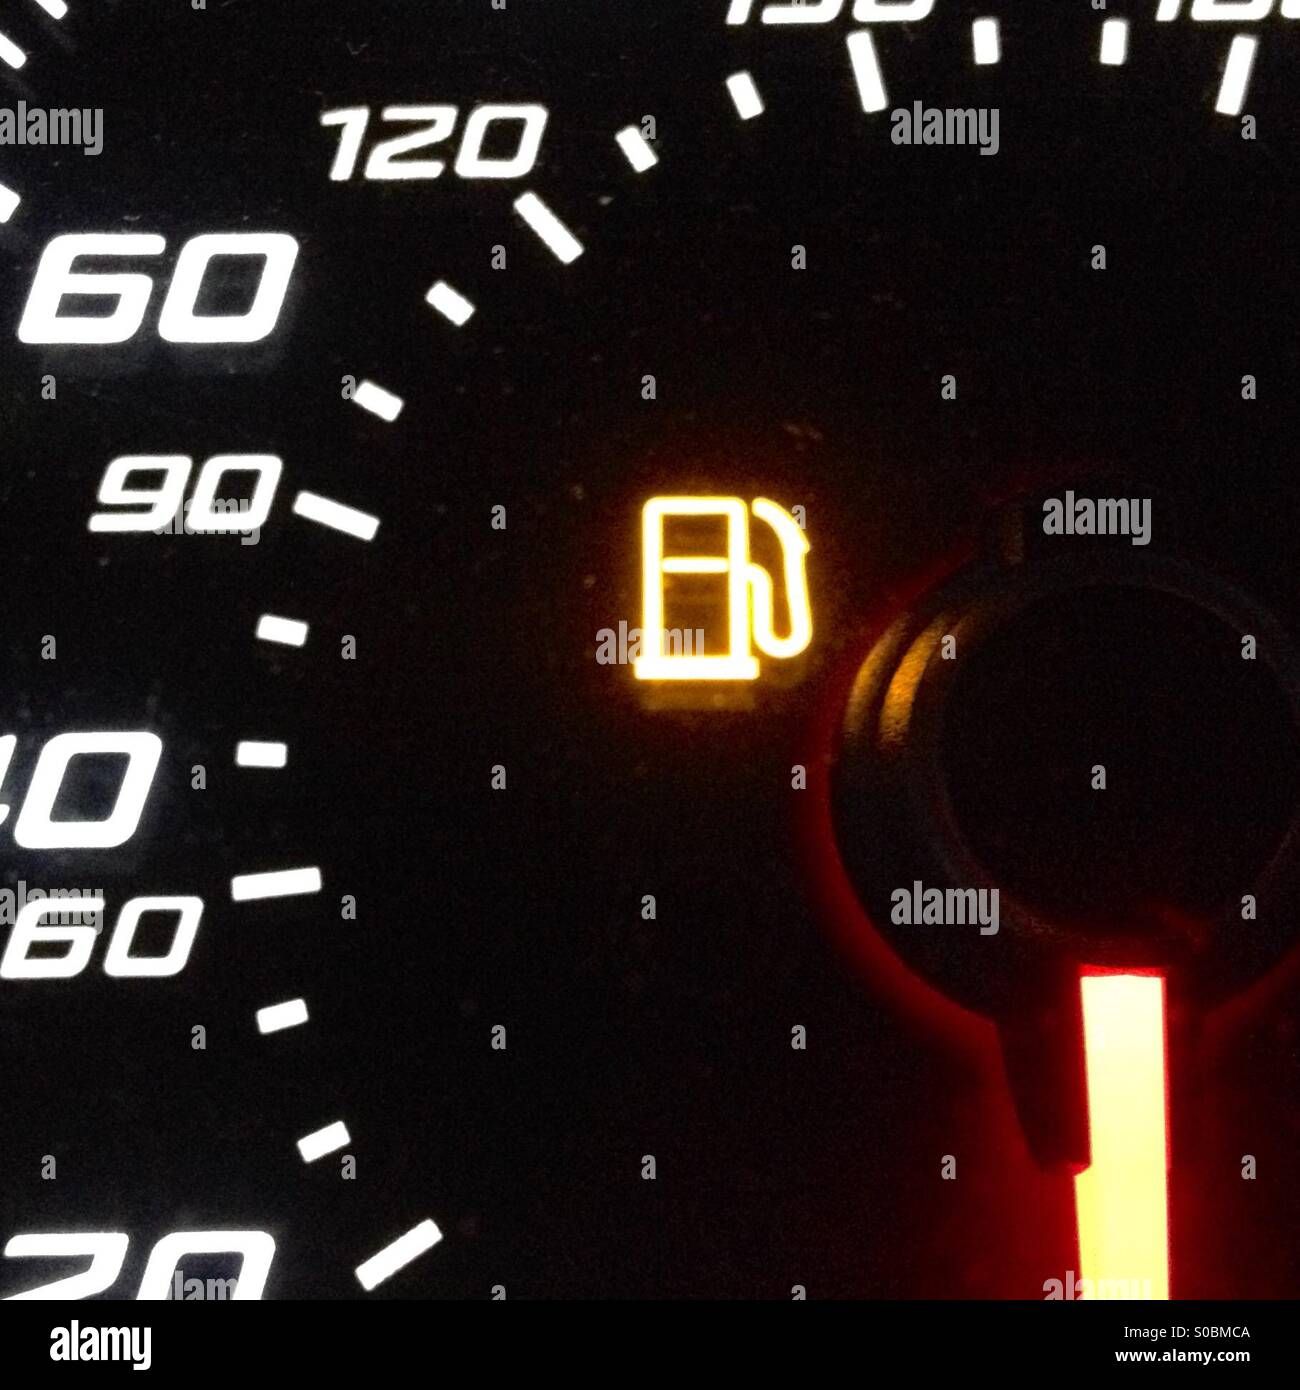 Low fuel warning light - Stock Image  sc 1 st  Alamy & Gas Gauge Light Stock Photos u0026 Gas Gauge Light Stock Images - Alamy